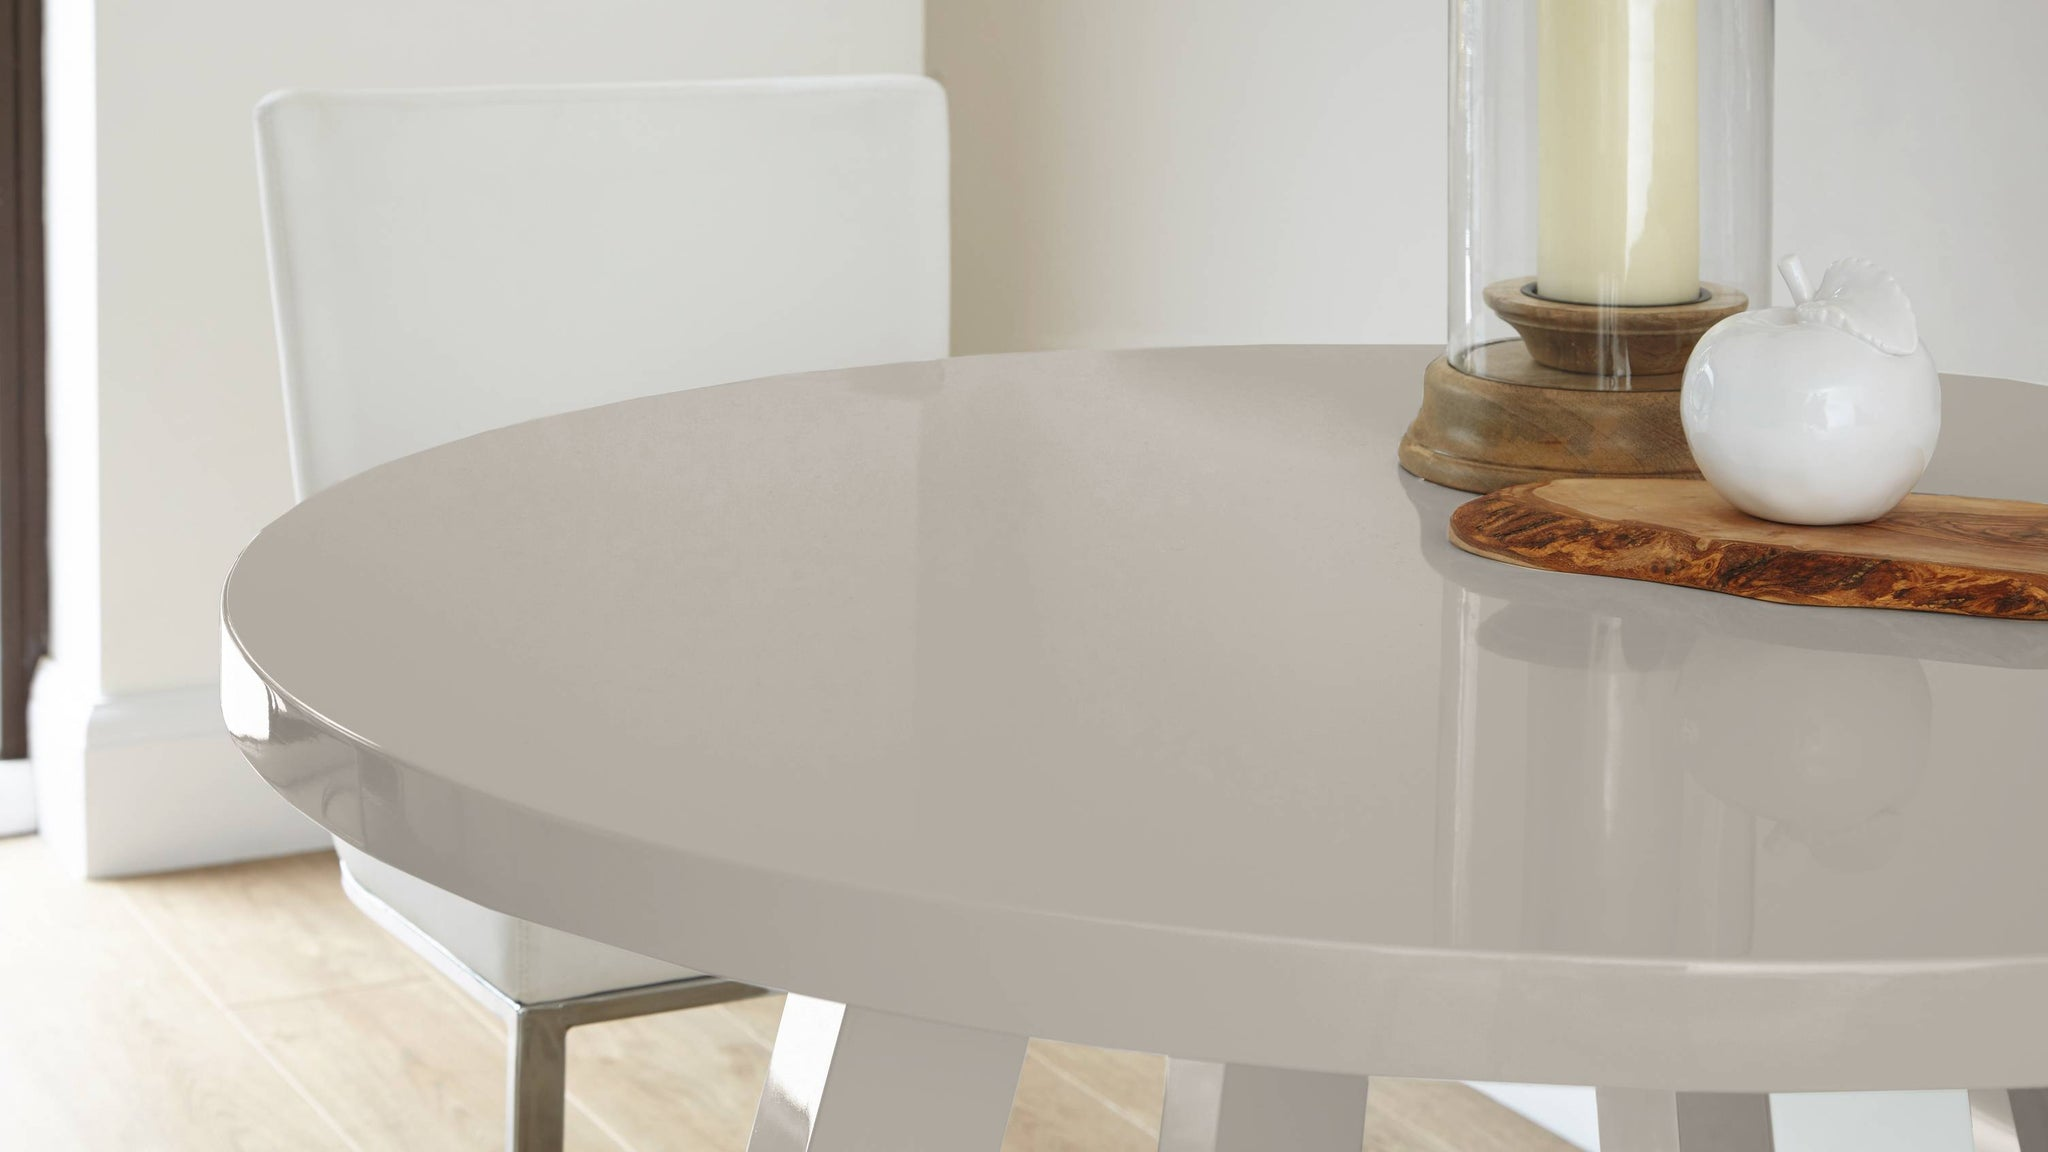 Round grey gloss four seater dining table Exclusively Danetti with Julia Kendell Range